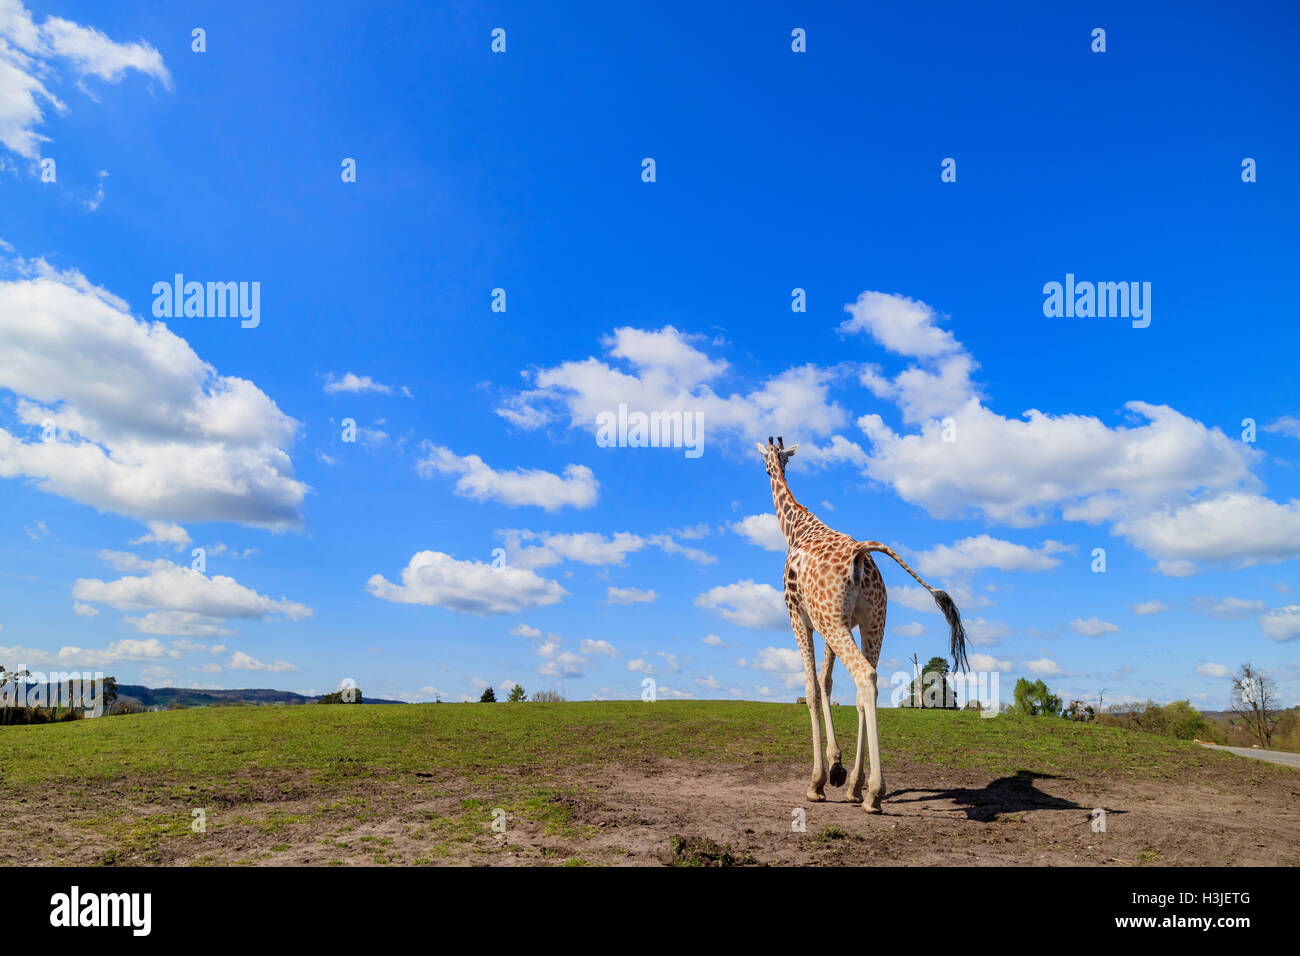 Giraffe walking in the beautiful West Midland Safari Park on APR 23, 2016 at Spring Grove, United Kingdom Stock Photo